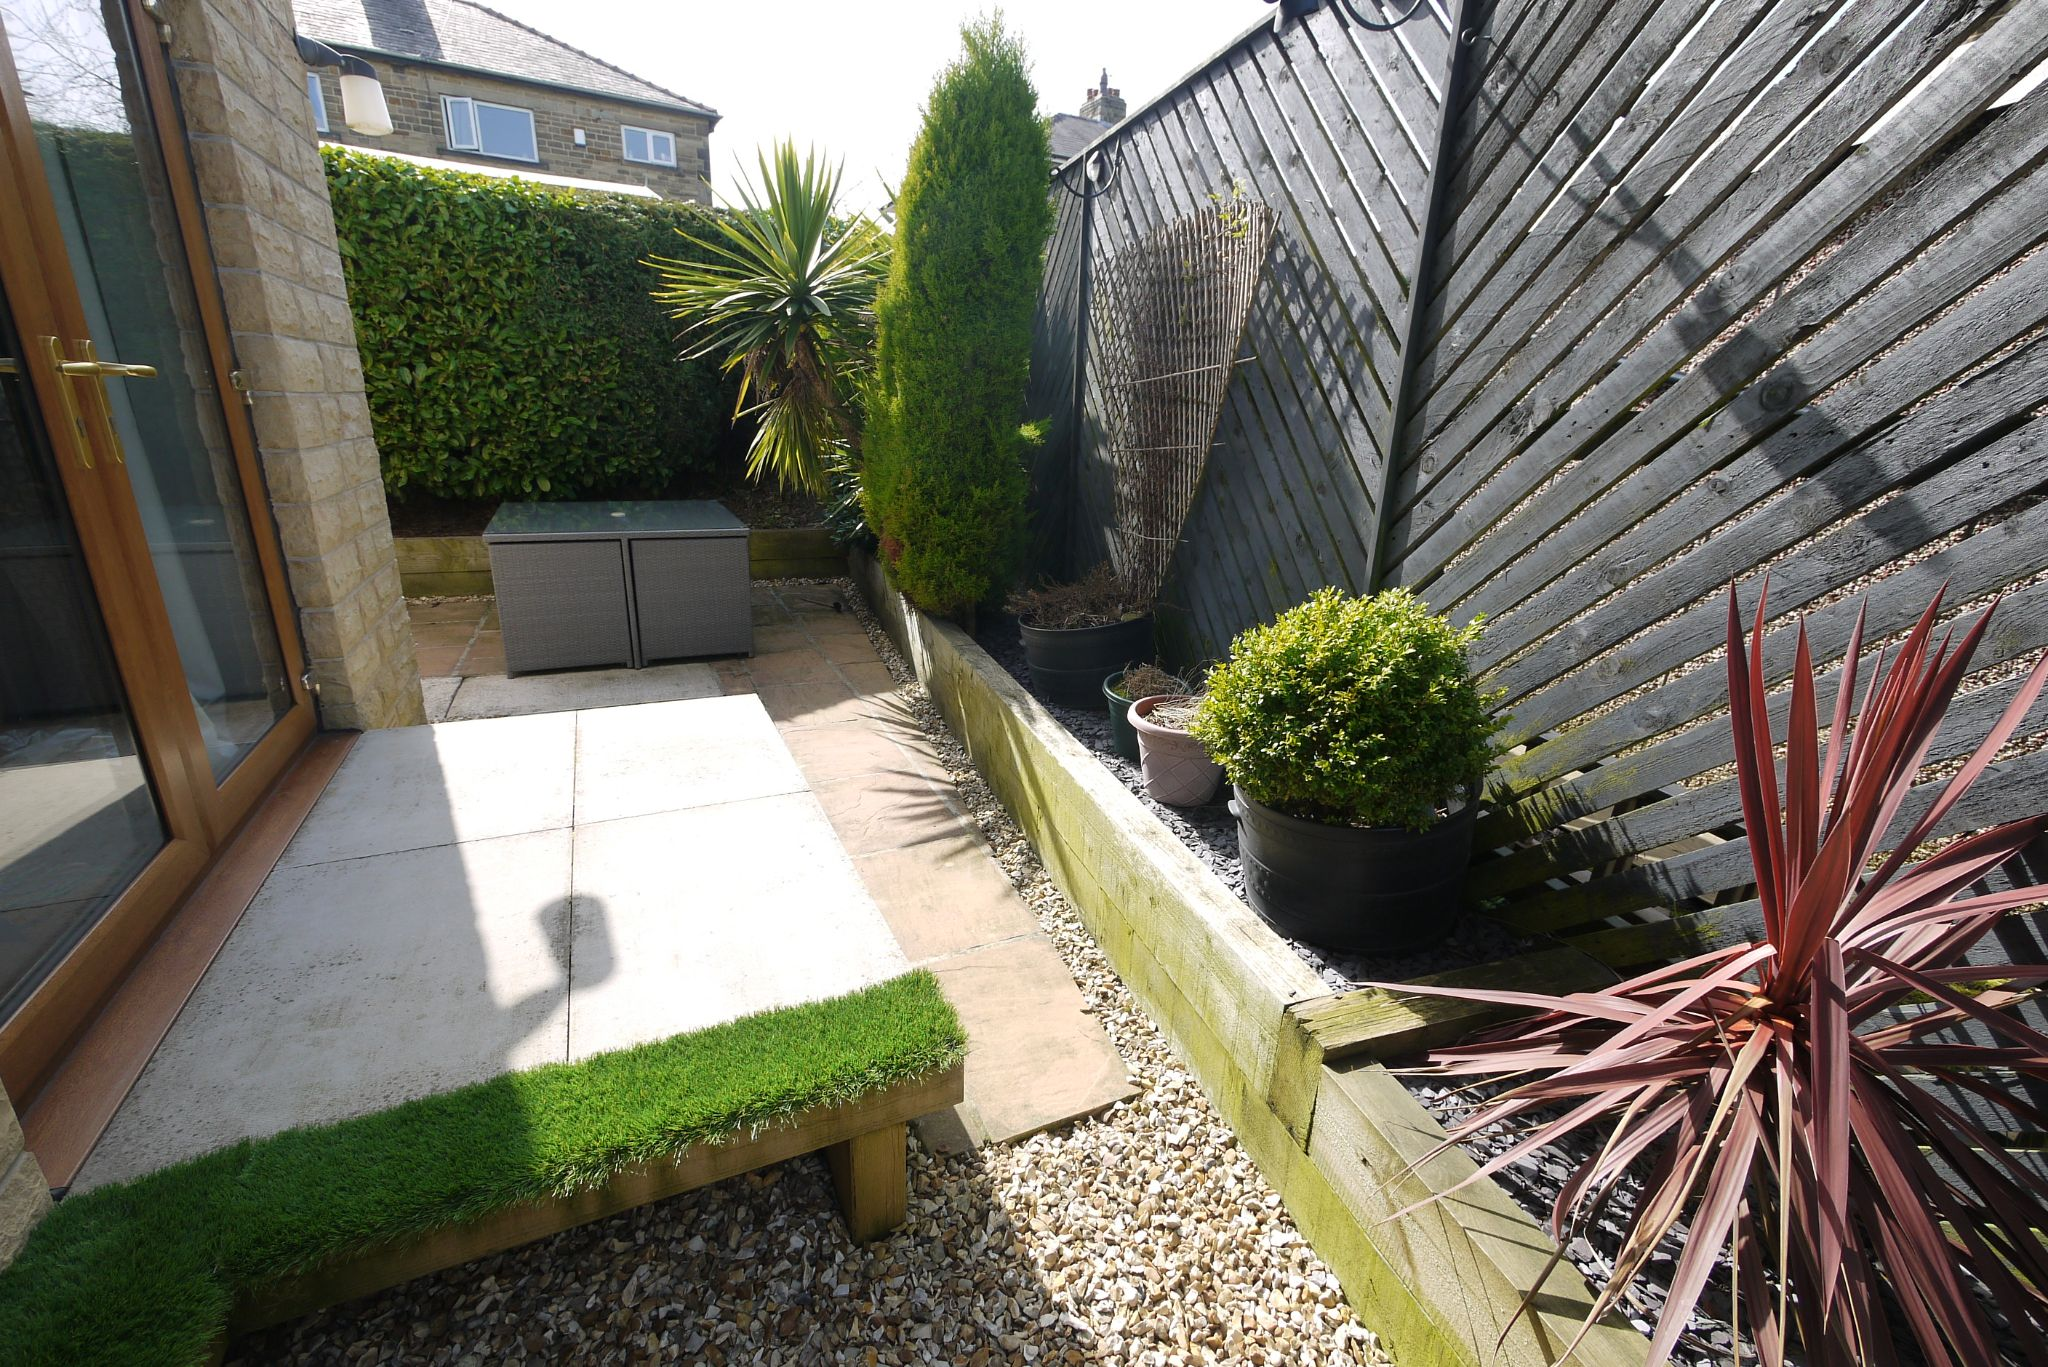 4 bedroom detached house SSTC in Brighouse - Rear garden 2.